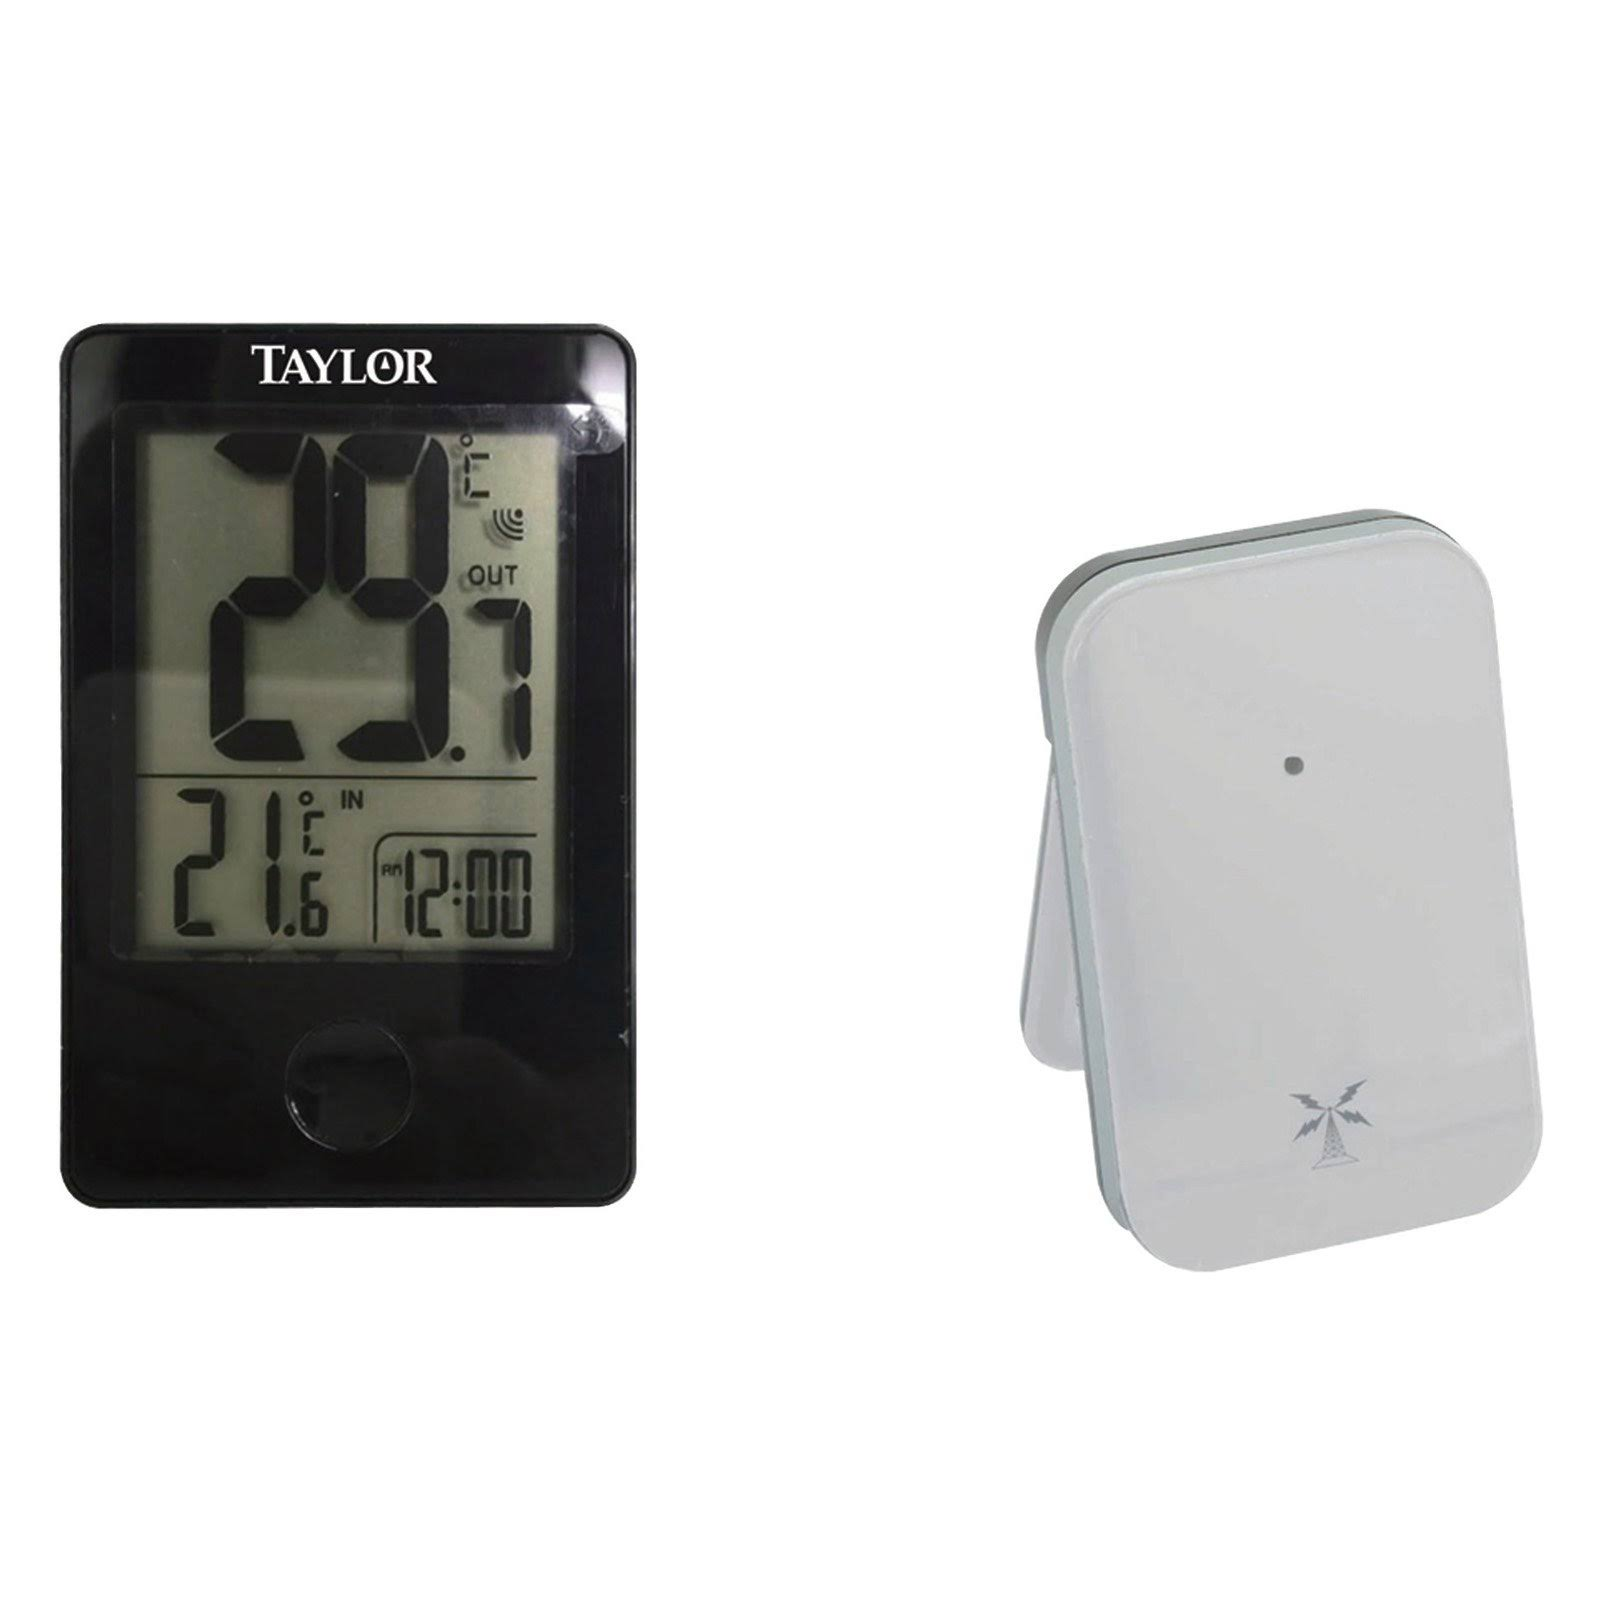 Taylor Indoor/Outdoor Digital Thermometer with Remote